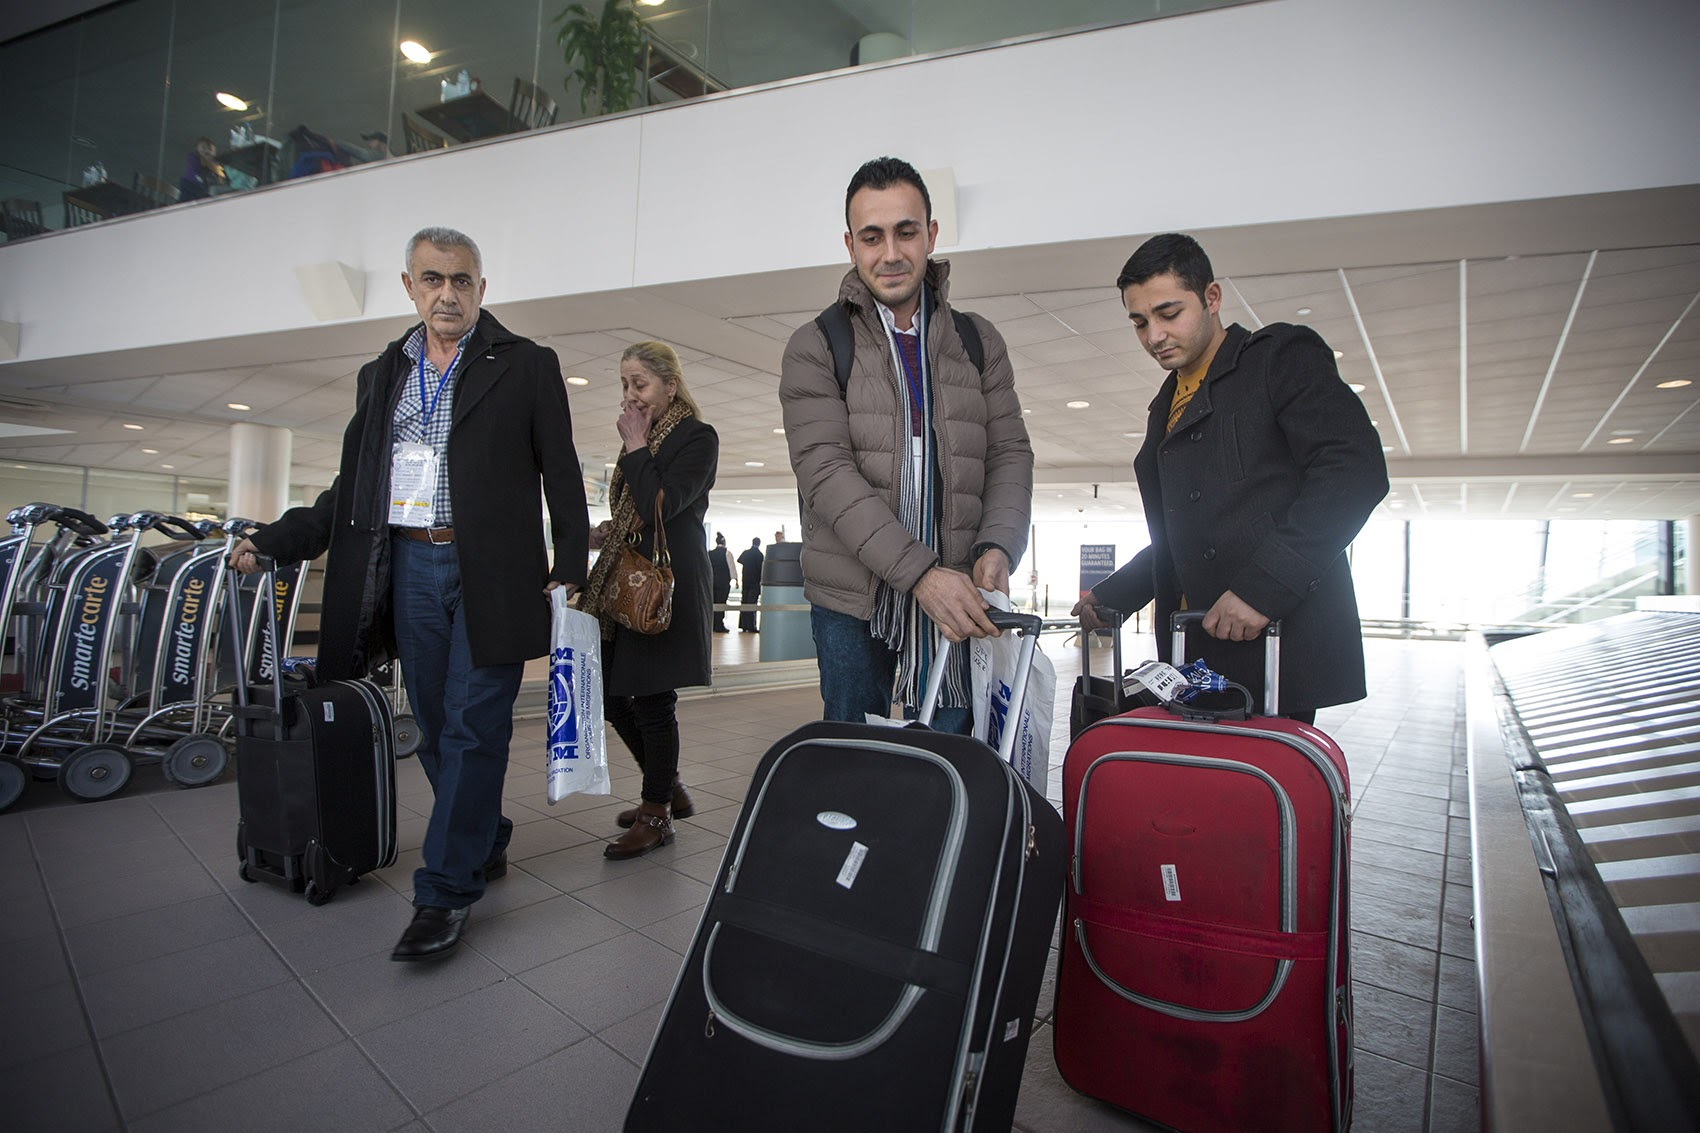 From left to right, Mohamad, Zeinab, Rashid  and Ahmad Mahmoud arrive at Manchester-Boston Regional Airport in New Hampshire. (Jesse Costa/WBUR)